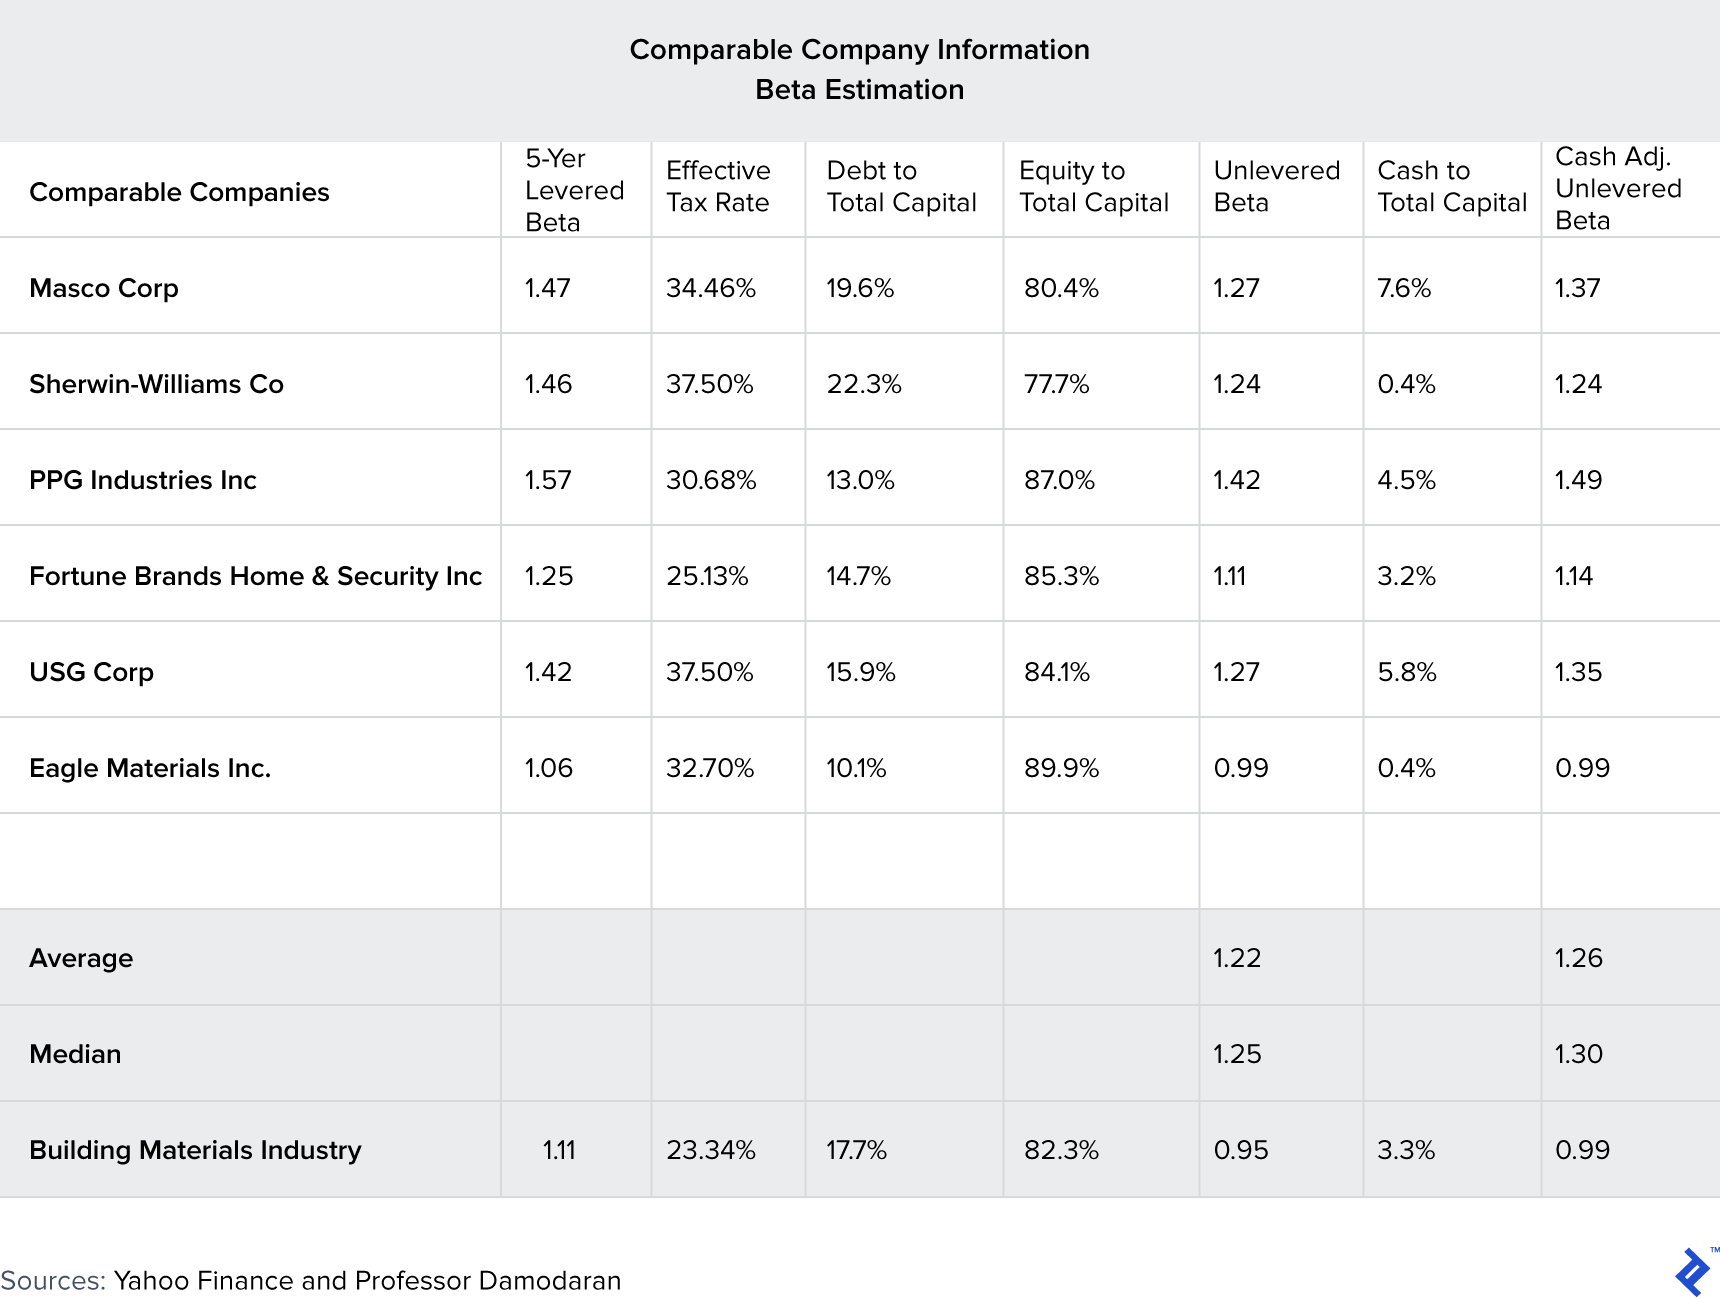 A table showing comparable company information beta estimation